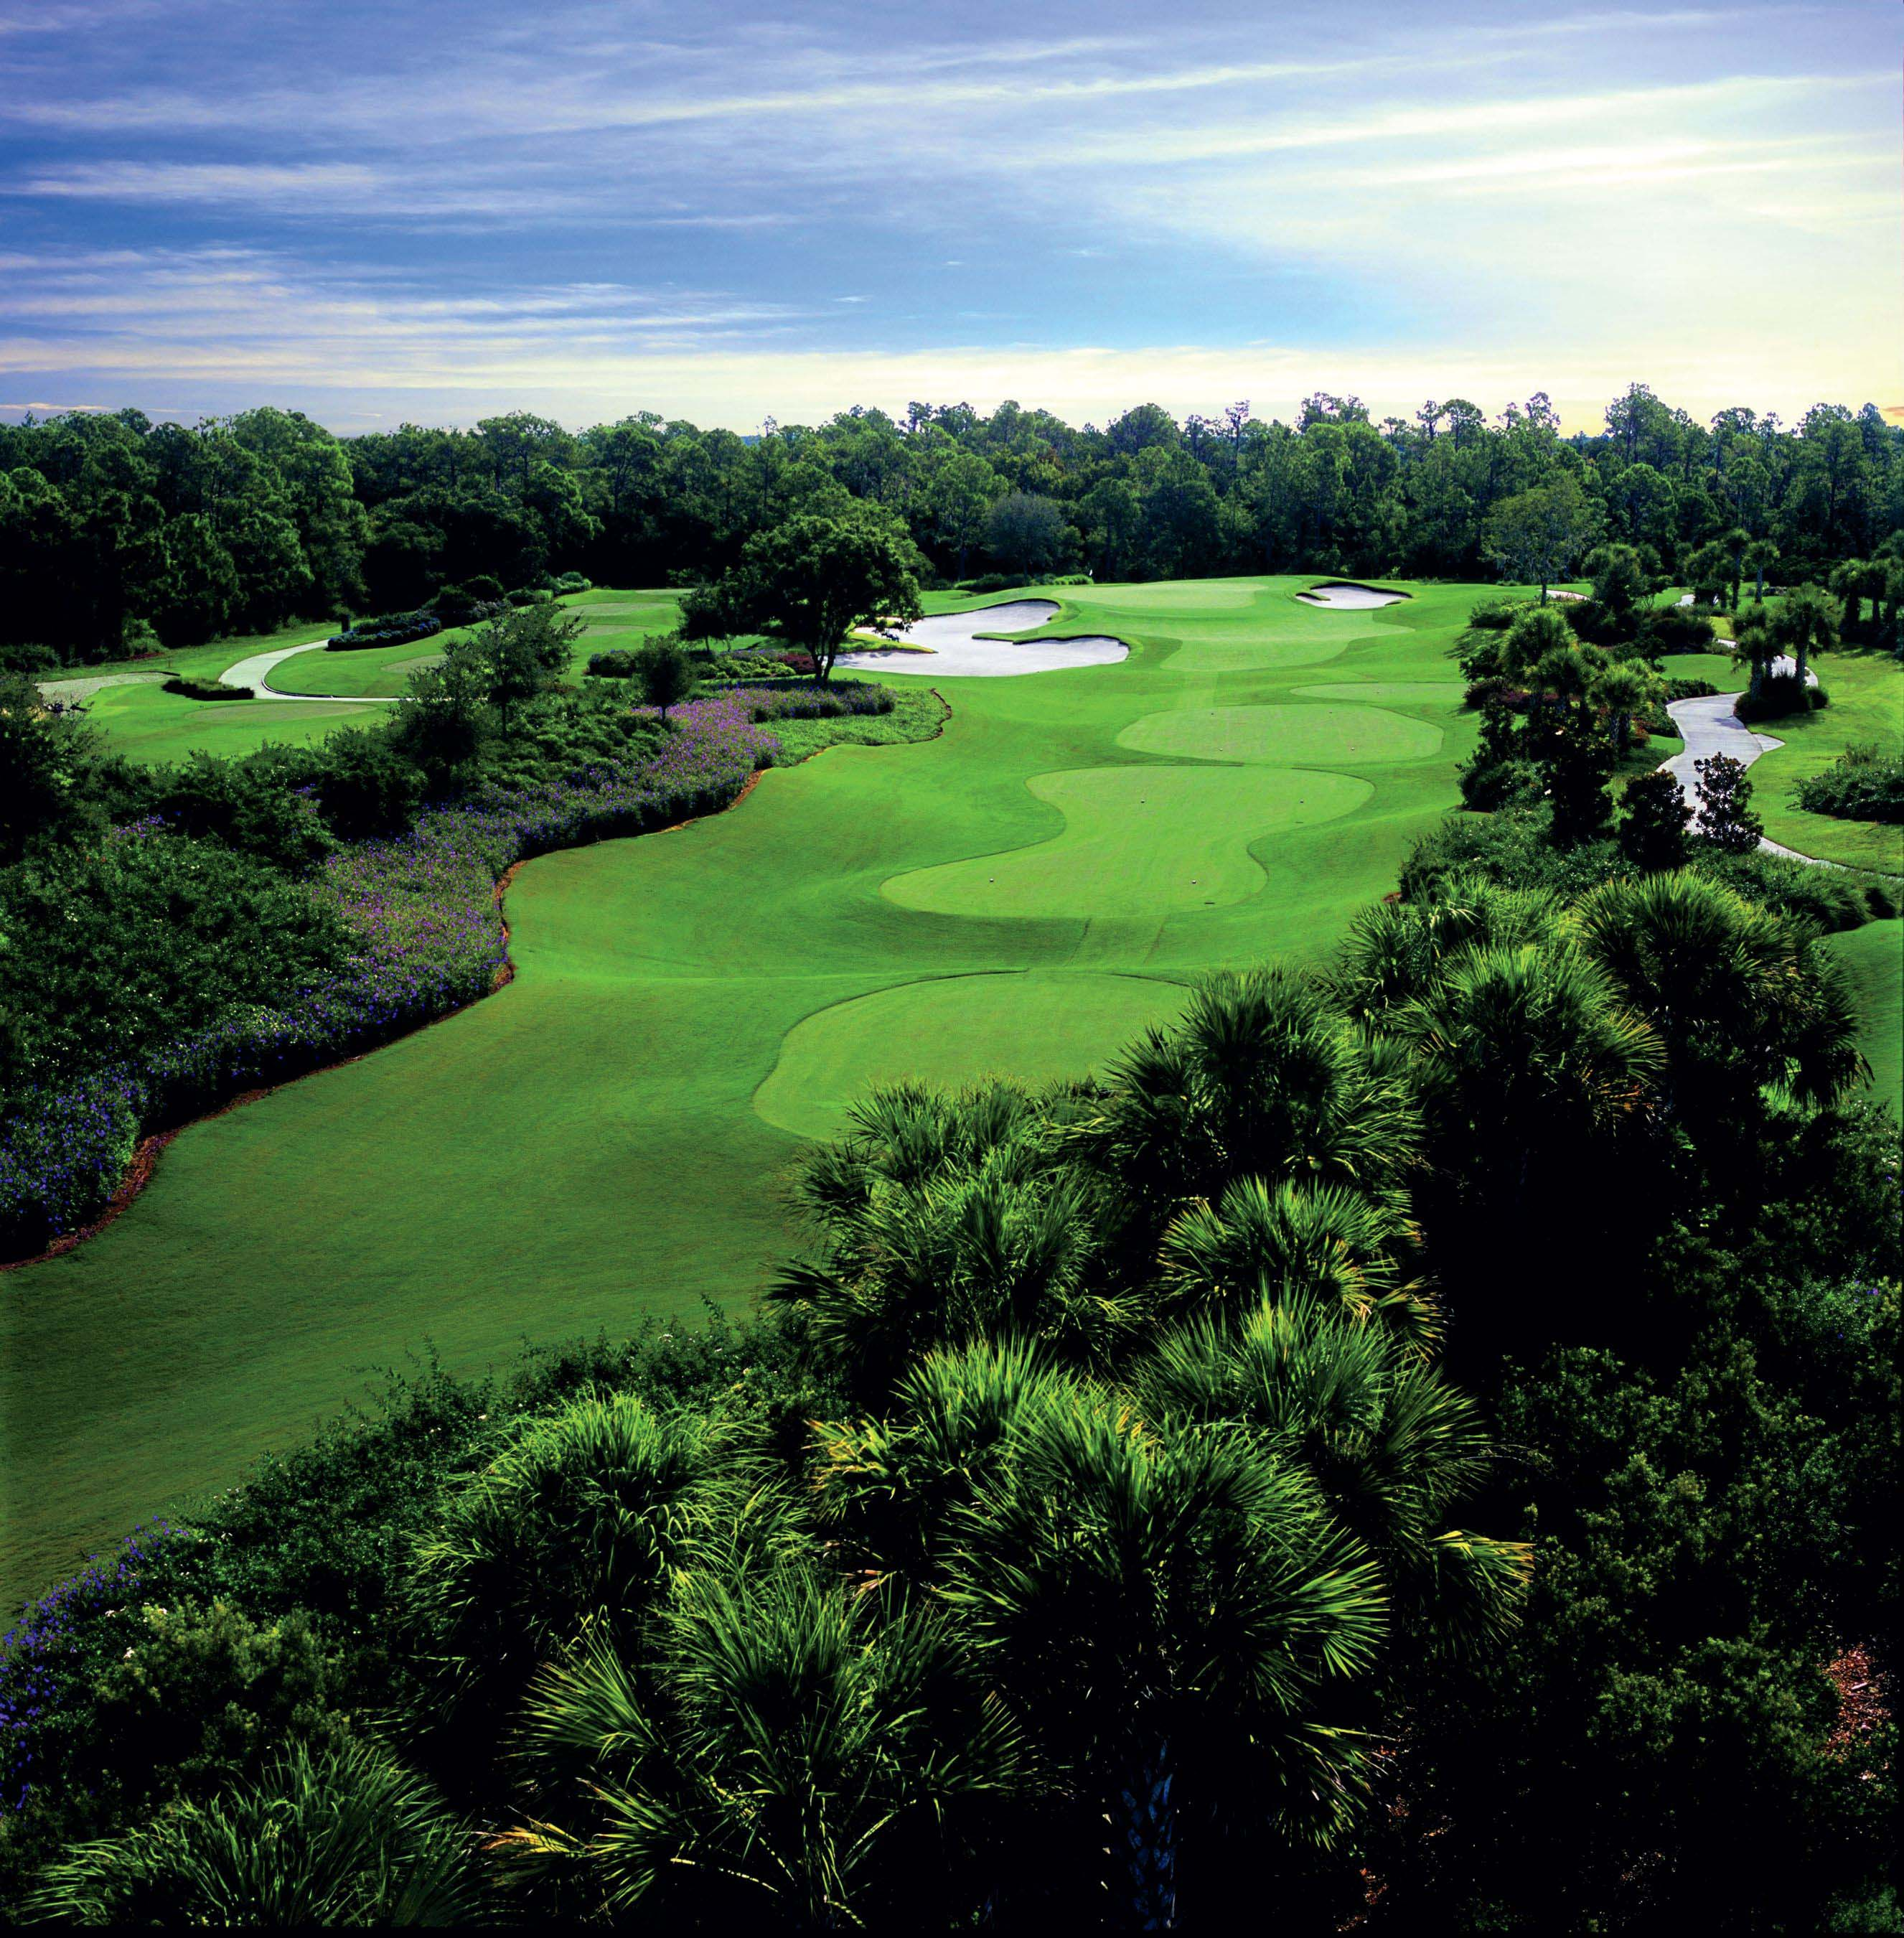 Overview of golf course named Ritz-Carlton Members Club Sarasota